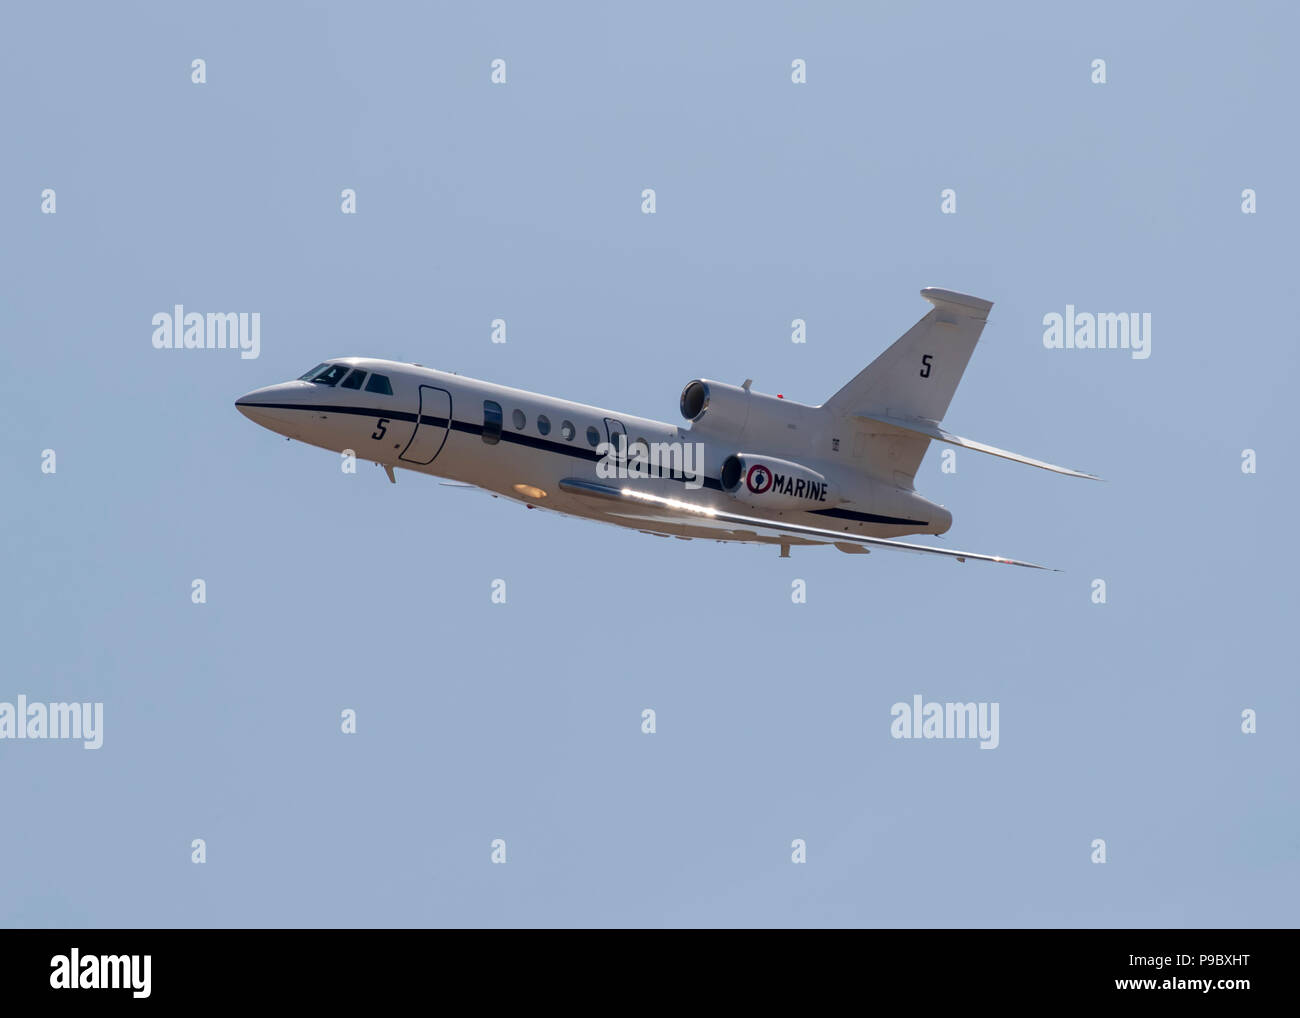 French Naval Dassault Falcon 50M maritime patrol aircraft at the annual RNAS Yeovilton Air Day - Stock Image